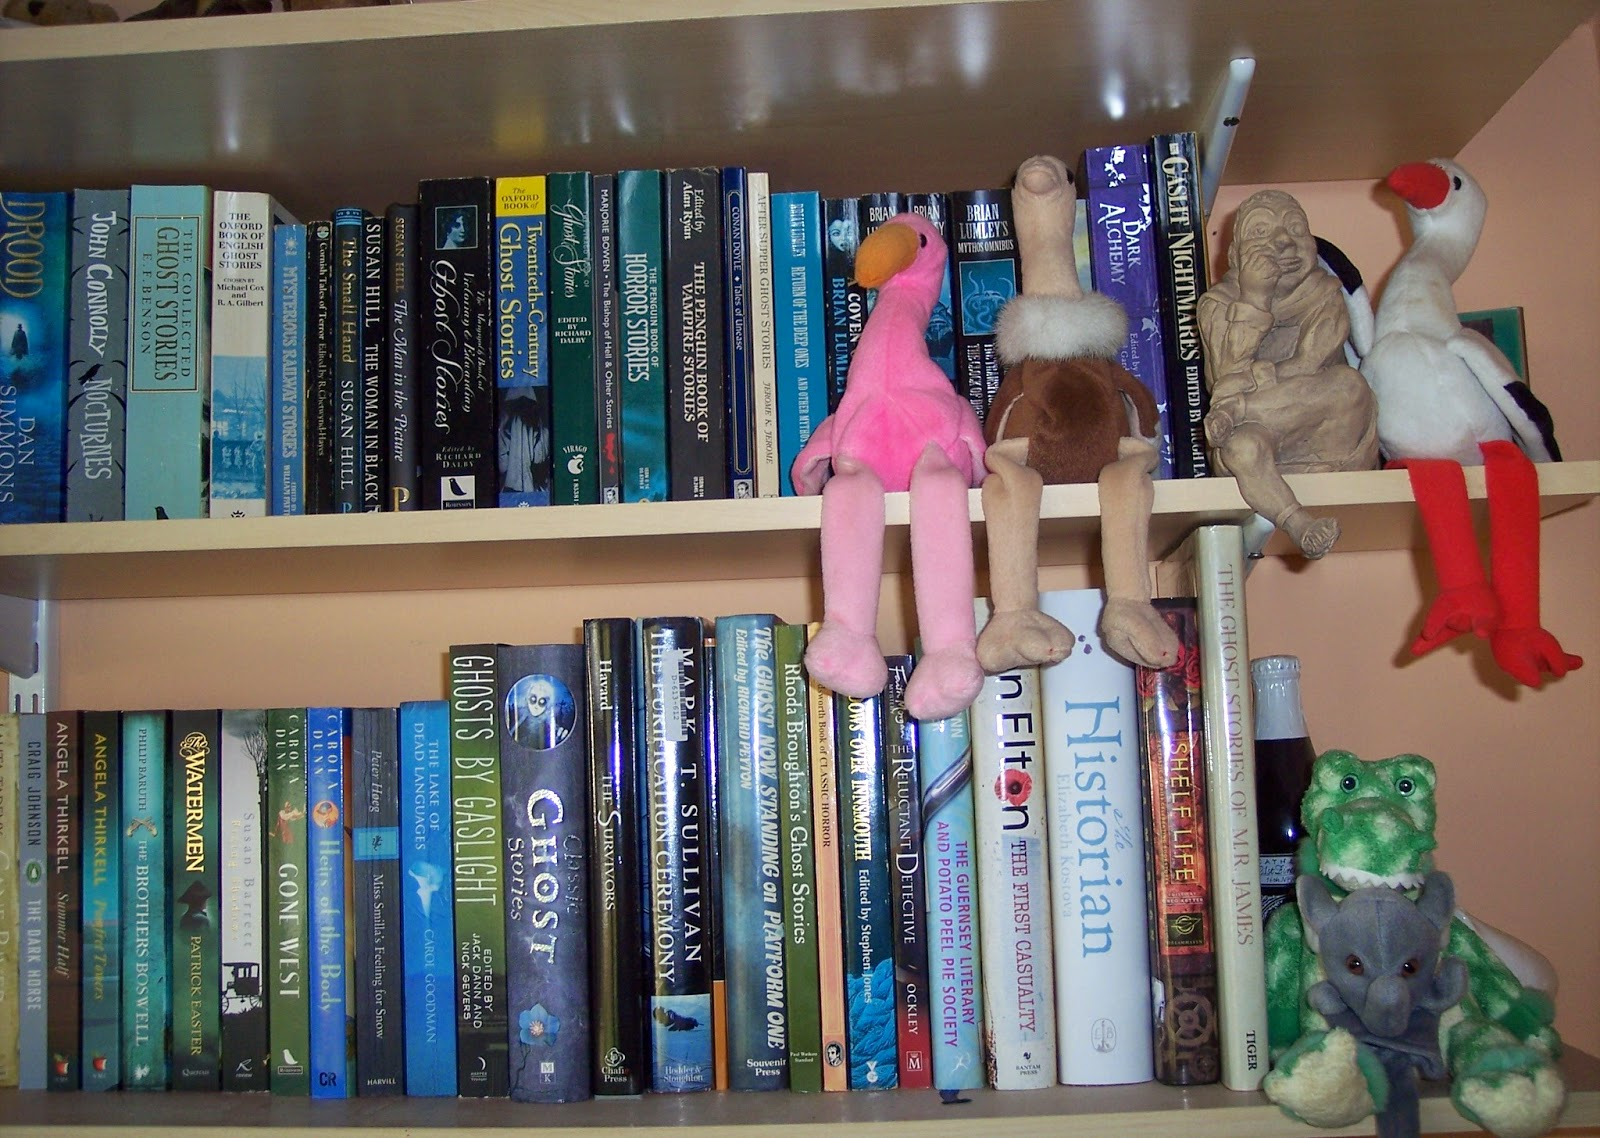 These Are At The Top Of The Stairs Facing You As You Go Up Mainly  Reference Books, Nonfiction, Poetry, My Cornish Books, But Also A Few  Large Heavy Books